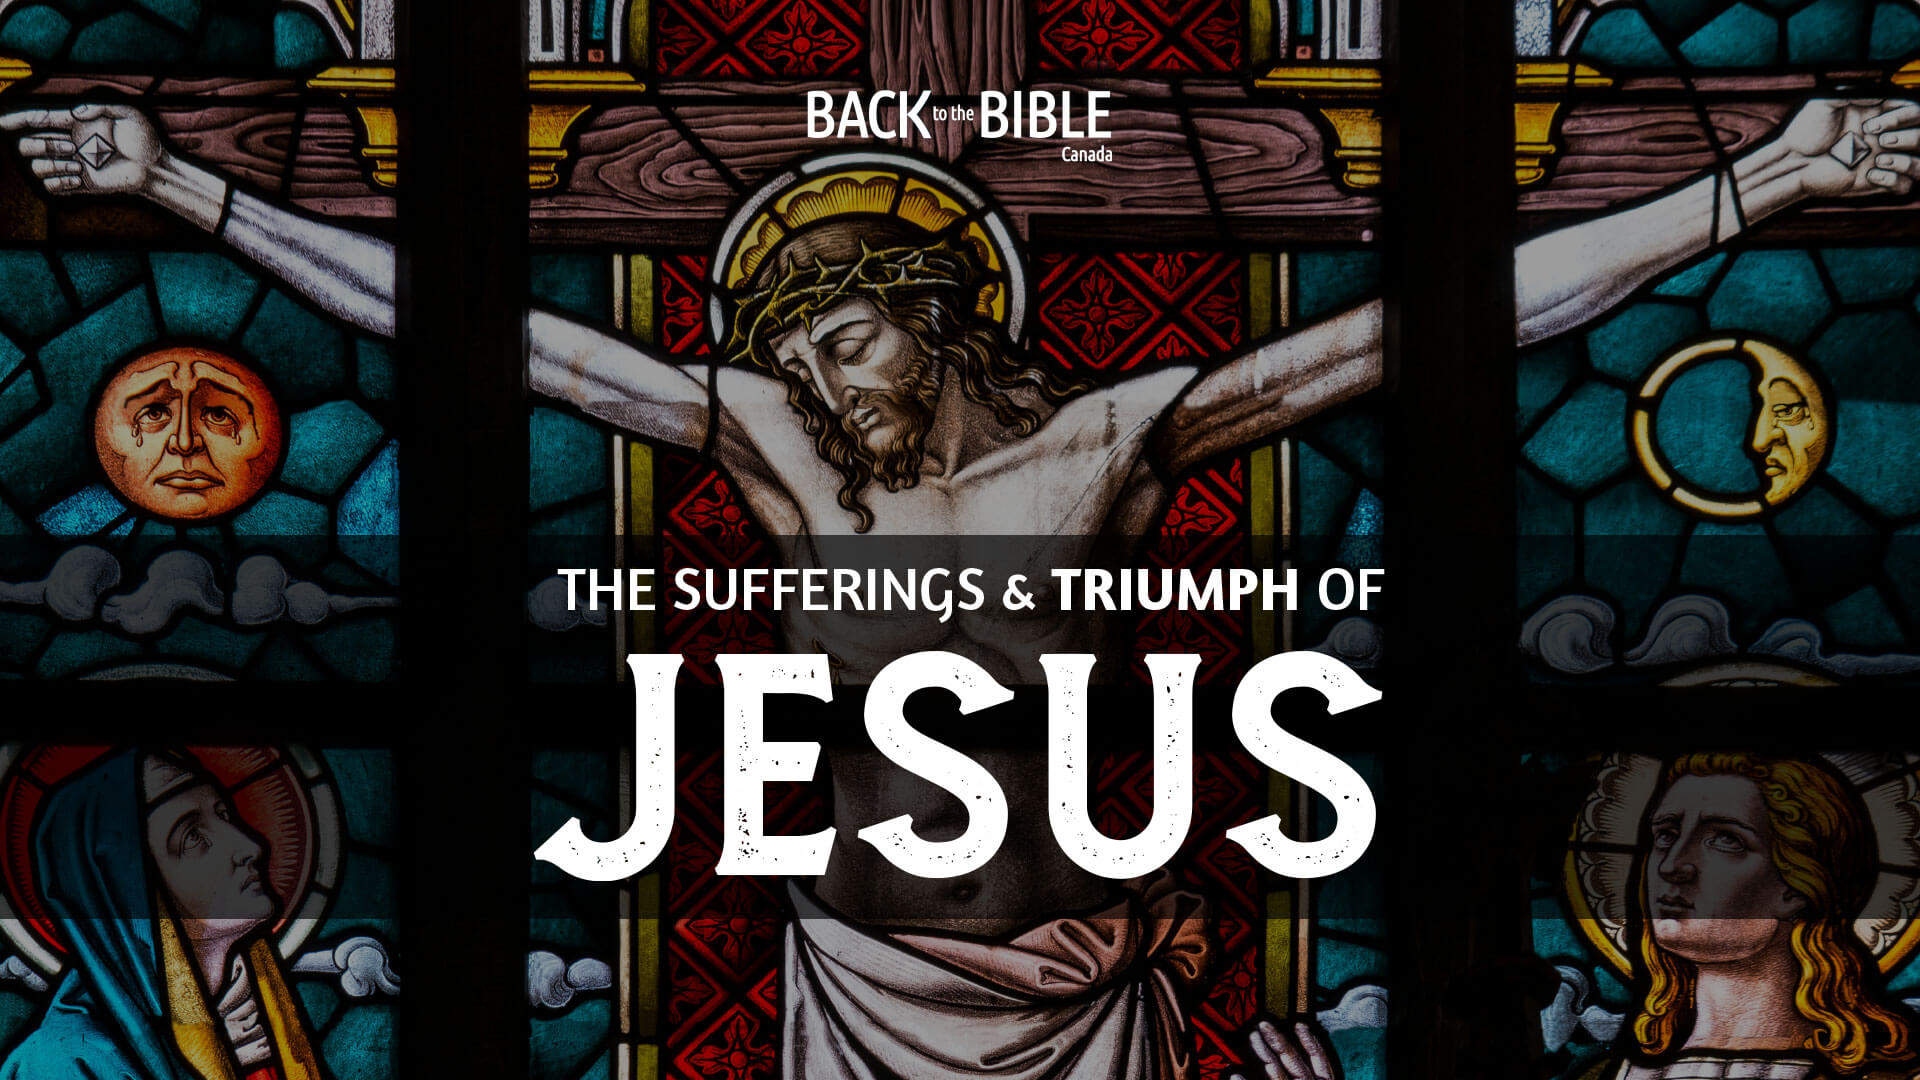 The Sufferings and Triumph of Jesus - Back to the Bible Canada